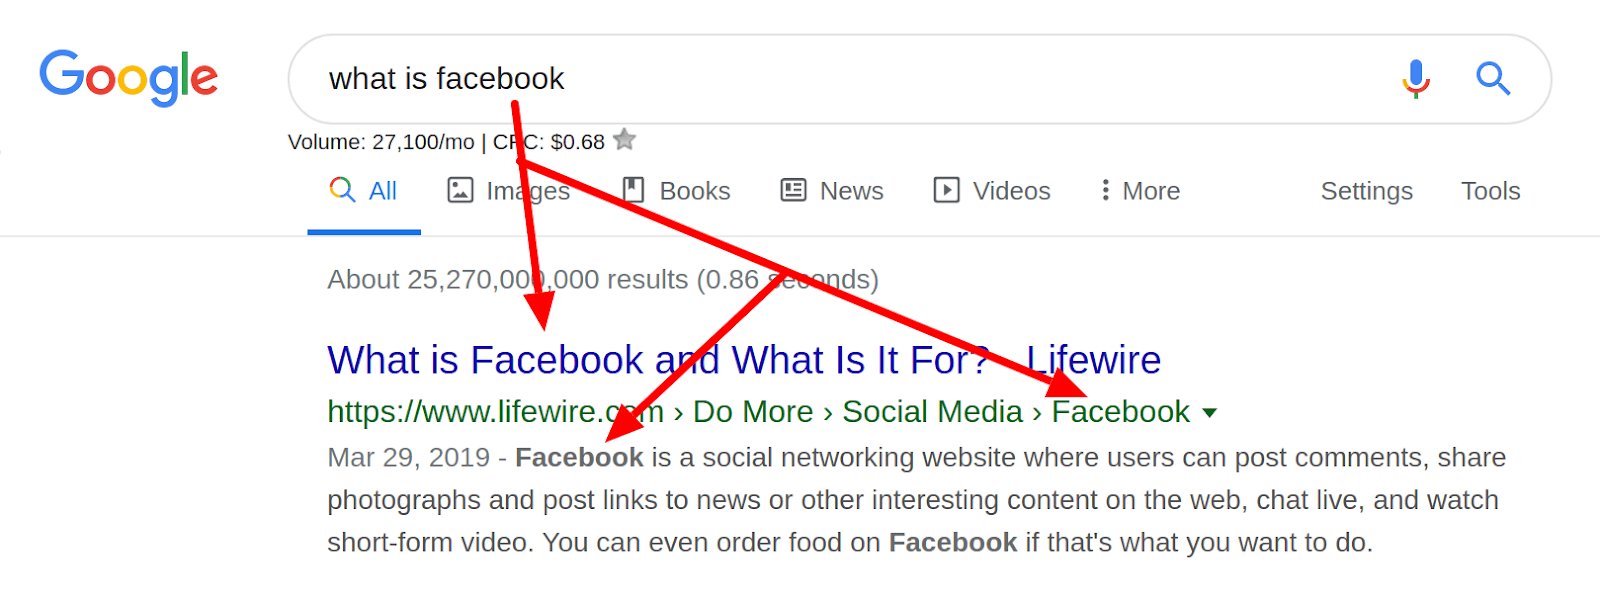 Using SEO to Rank Better on Facebook